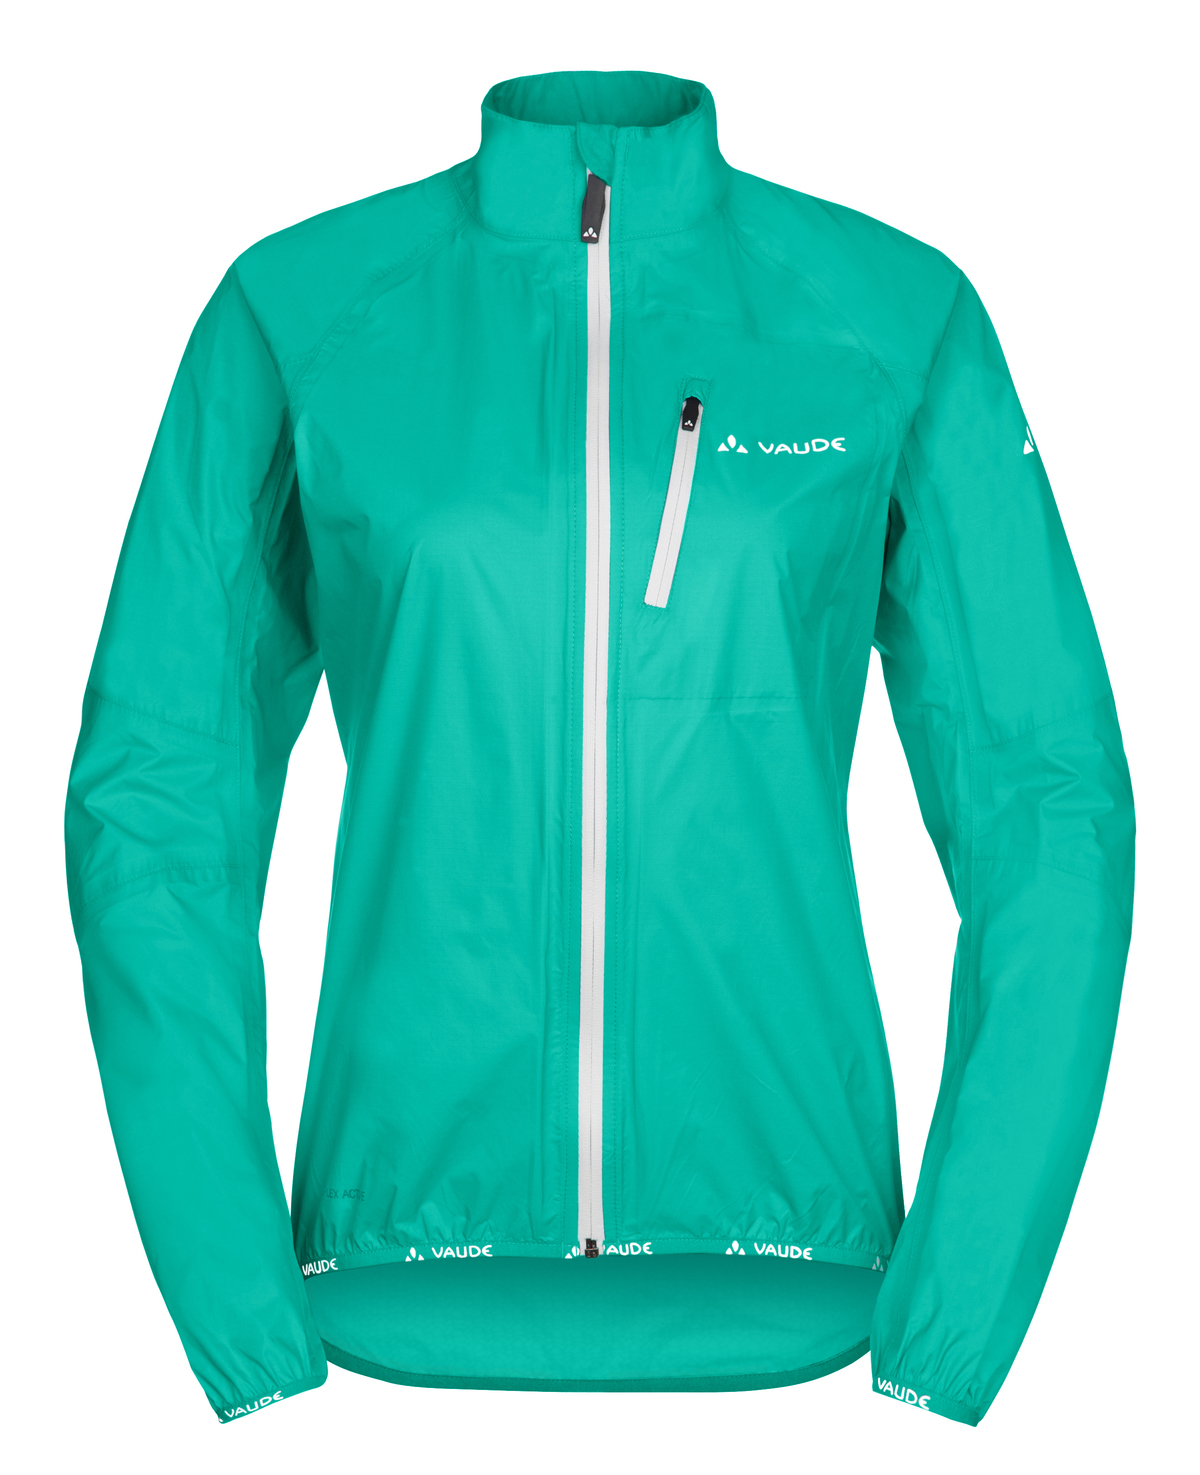 VAUDE Women´s Drop Jacket III lotus green Größe 34 - schneider-sports